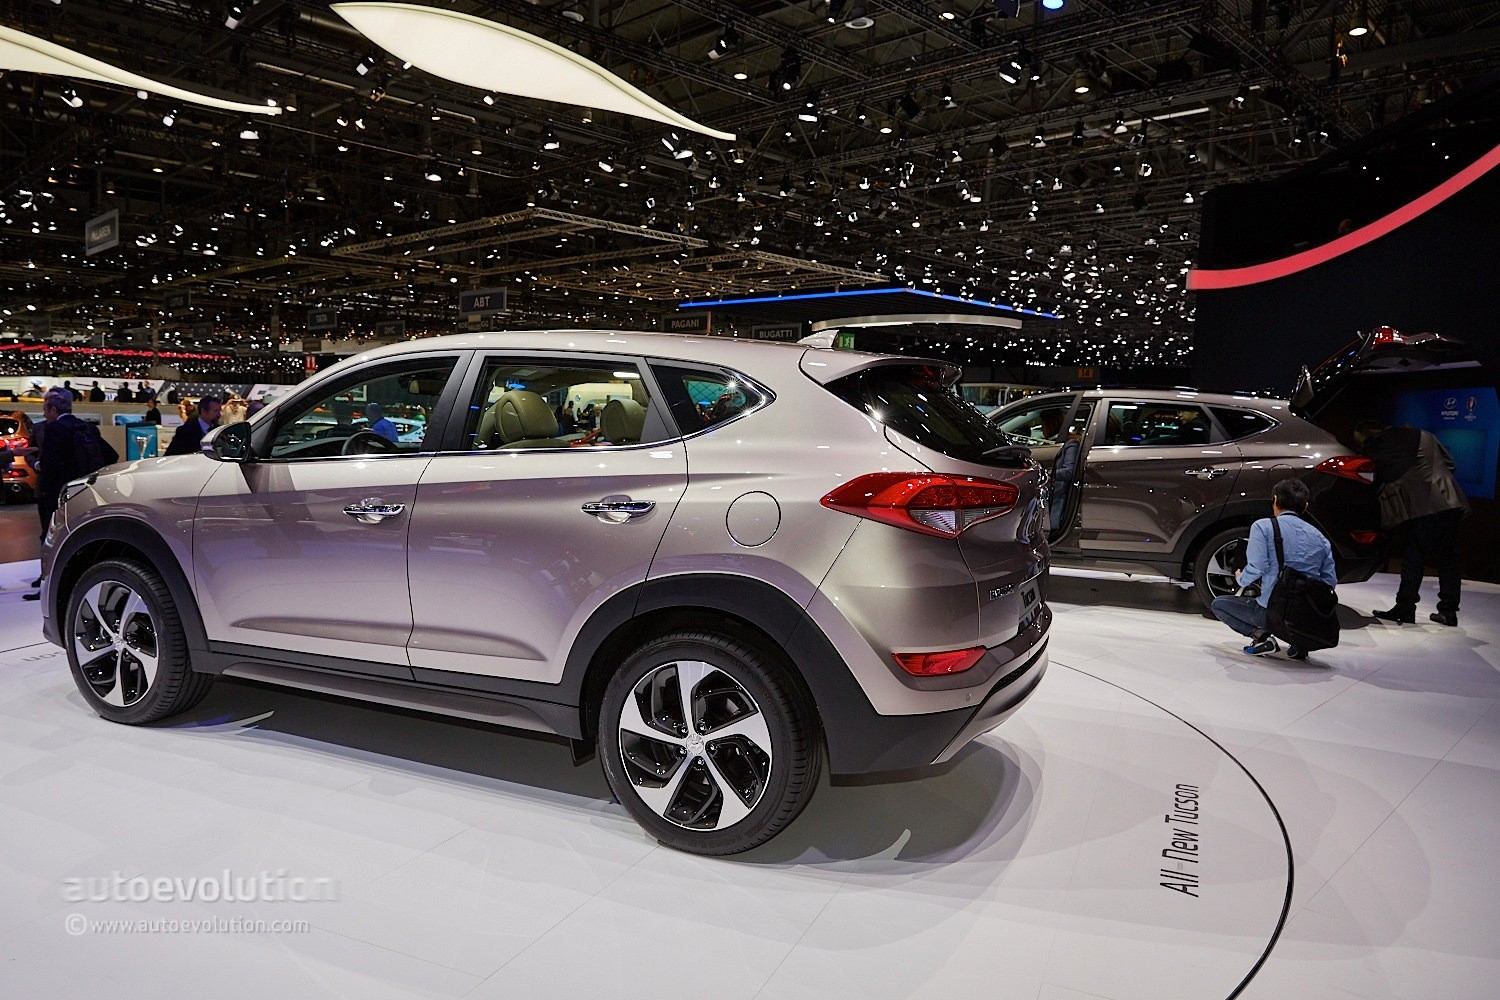 2016 Hyundai Tucson Debuts in Geneva with 48V Hybrid and PHEV Engines - autoevolution